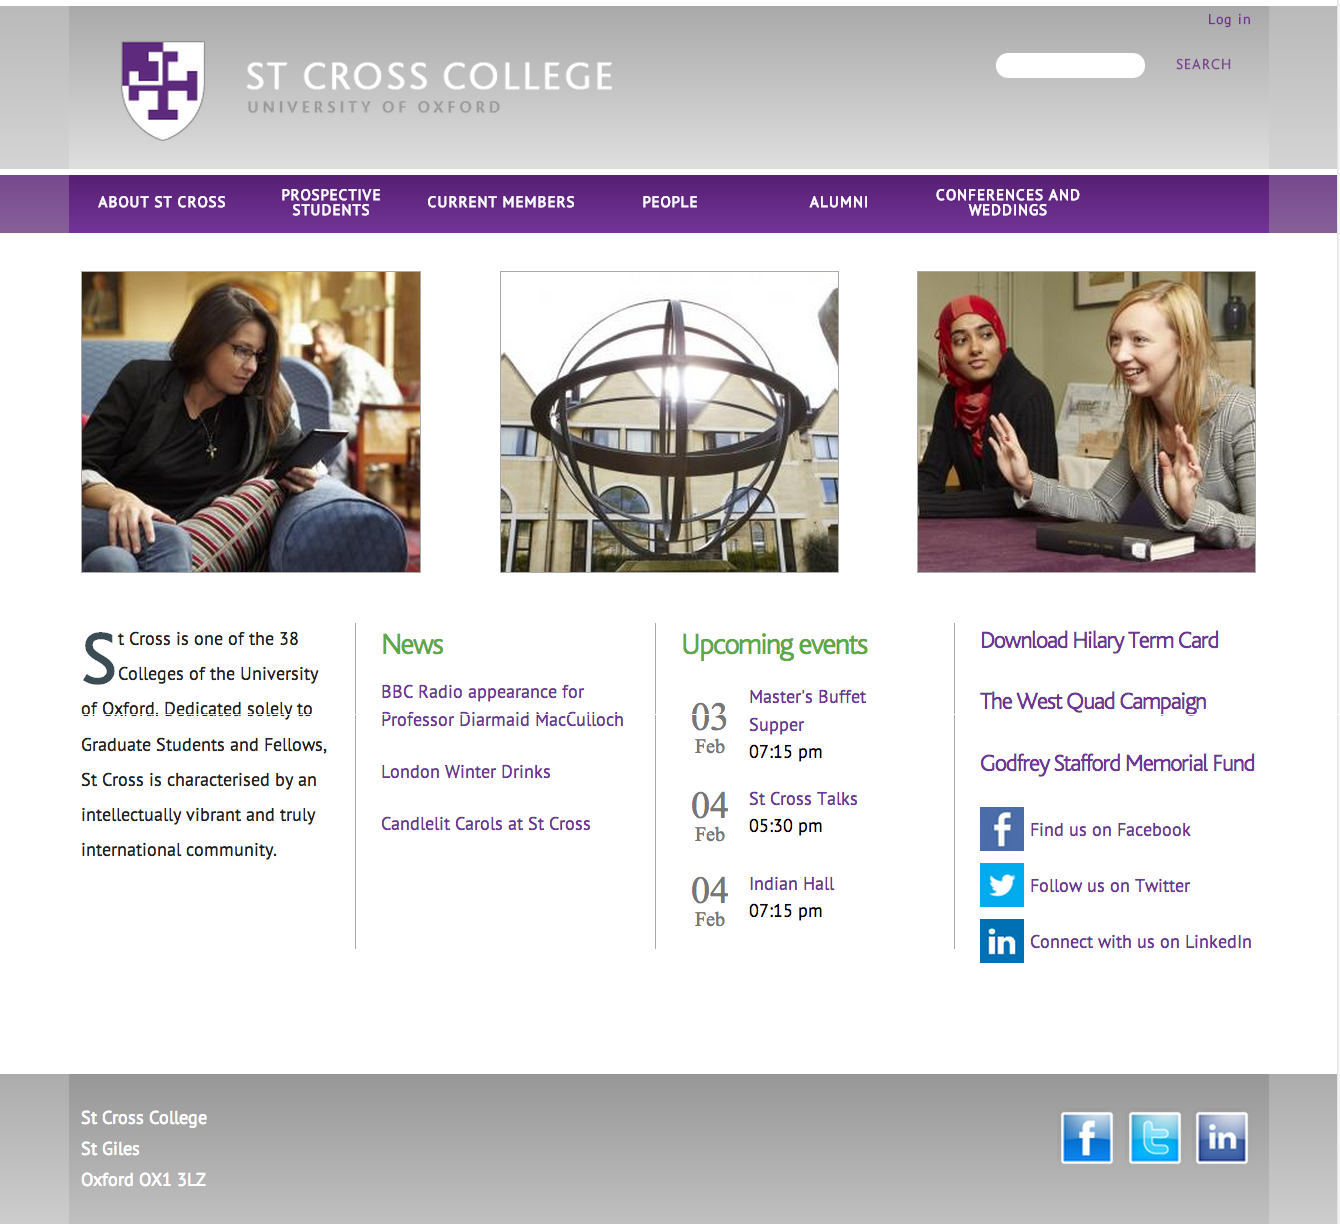 St Cross College, University of Oxford